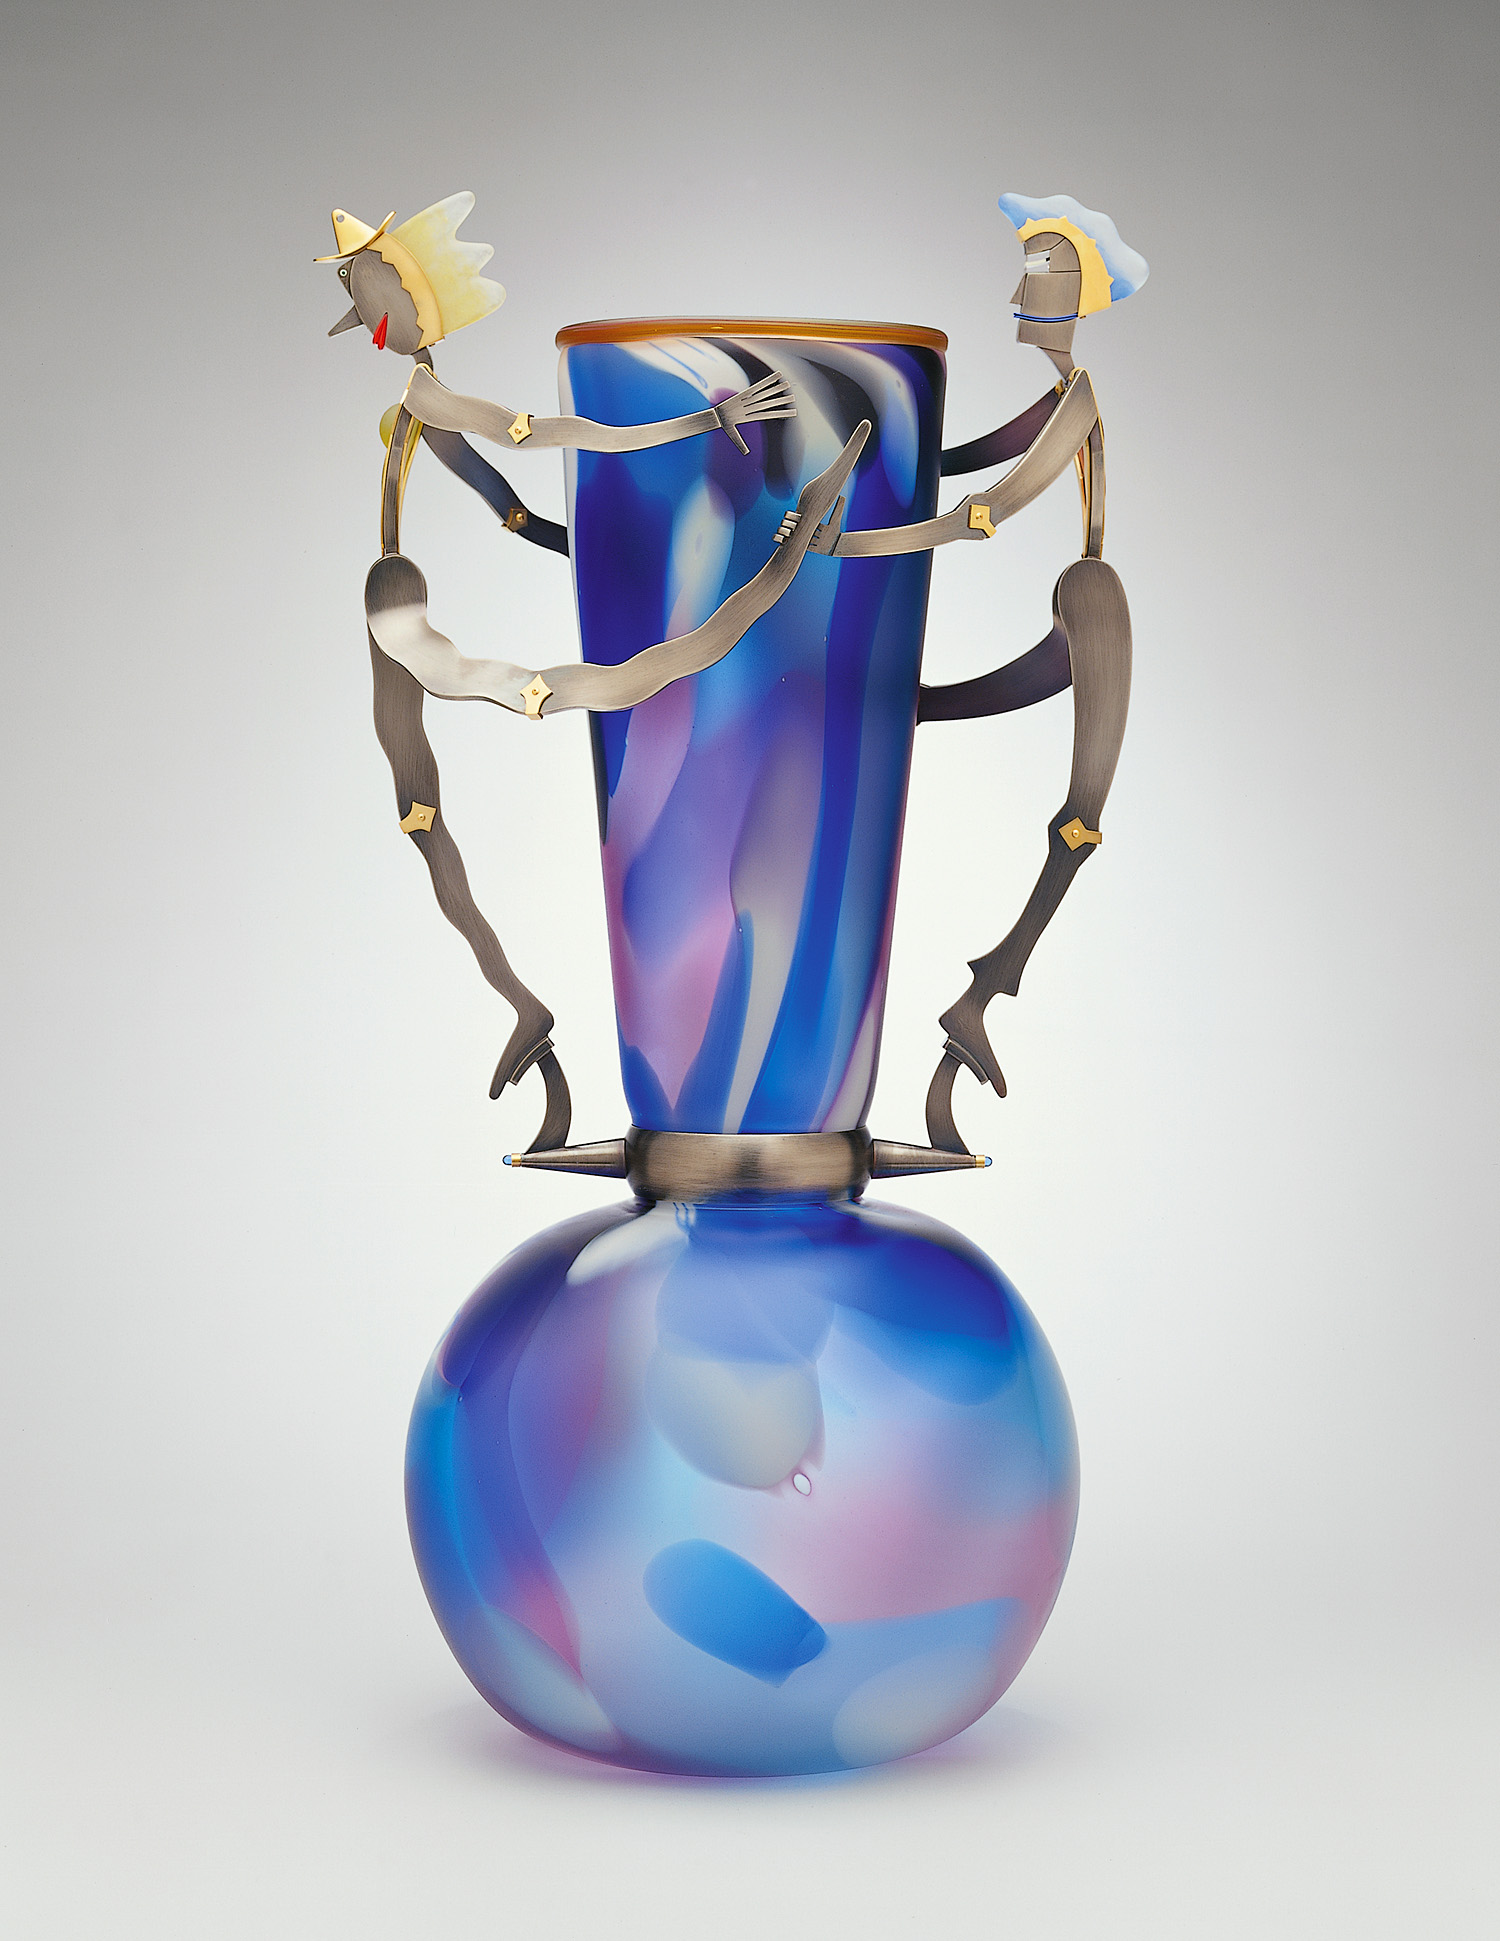 Freddo and Calda   2001. Blown glass, nickel and gold-plated bronze, Vitrolite, pate de verre. 34½ x 18 x 14""